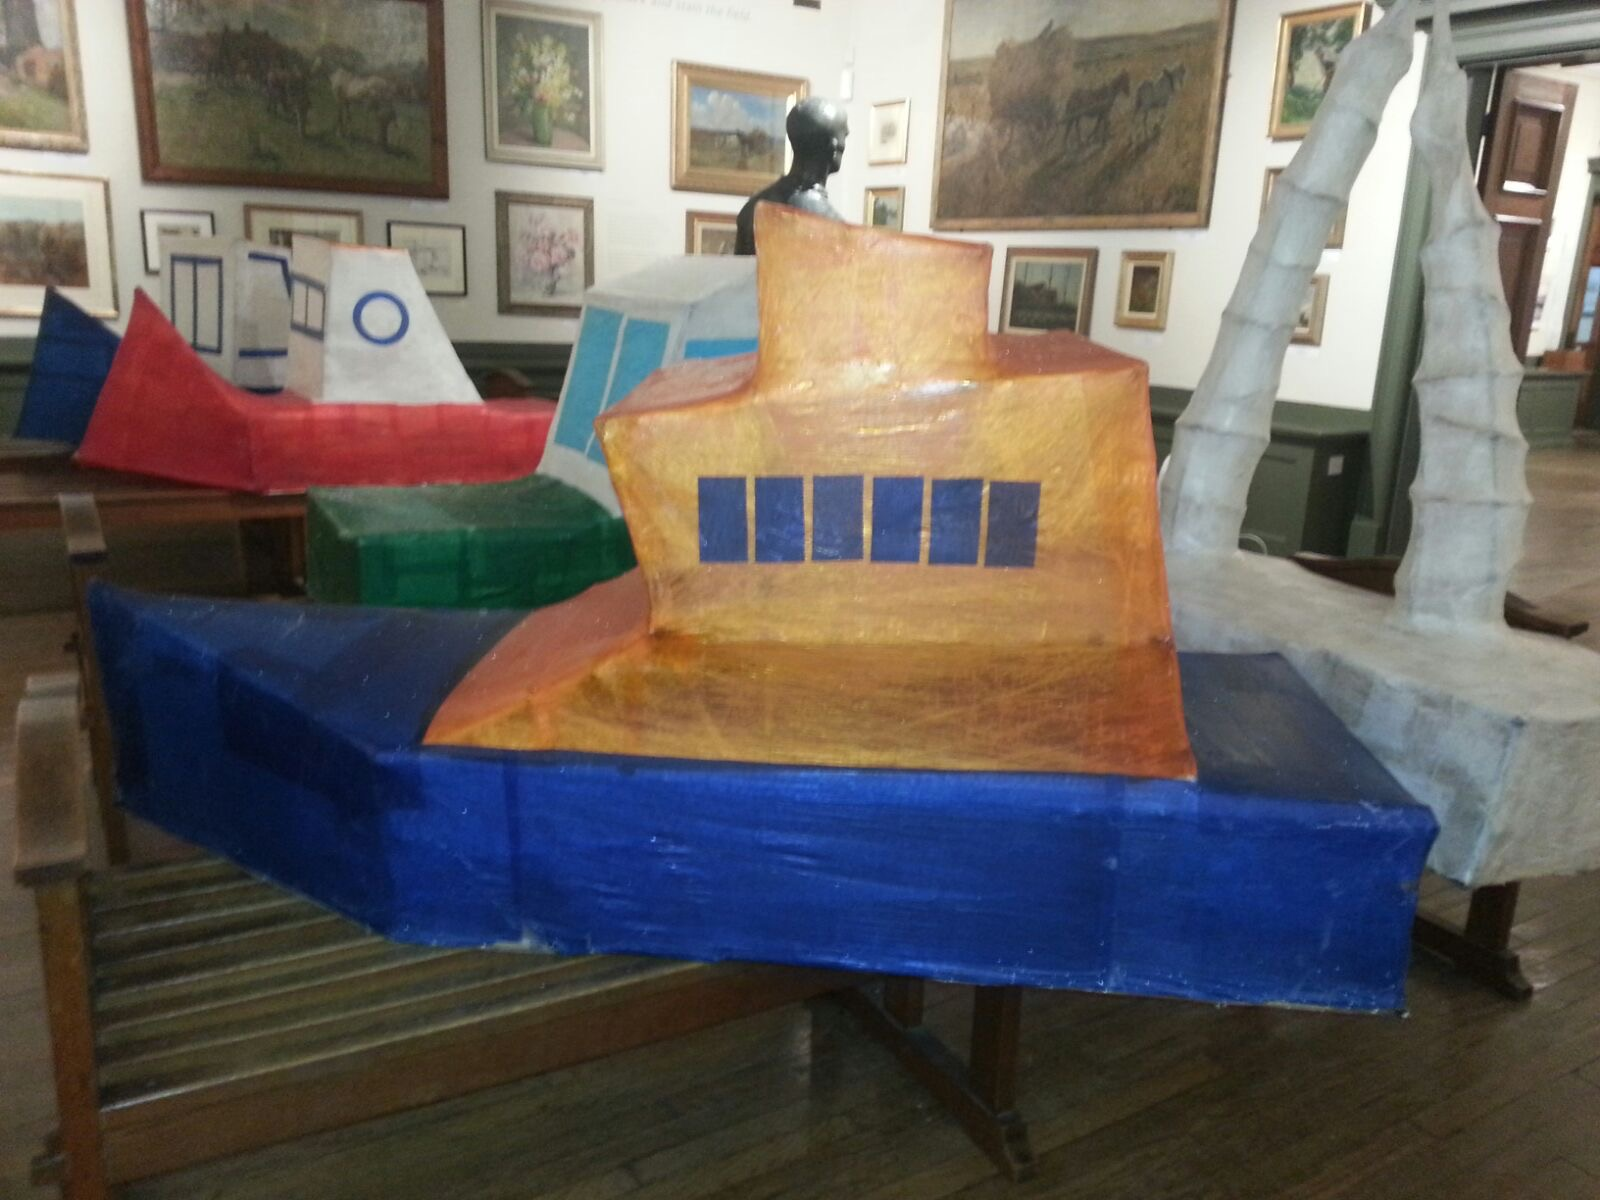 The fantastic Whitby Lifeboat was recreated as a lantern by the pupils of St Hilda's Roman Catholic Primary School